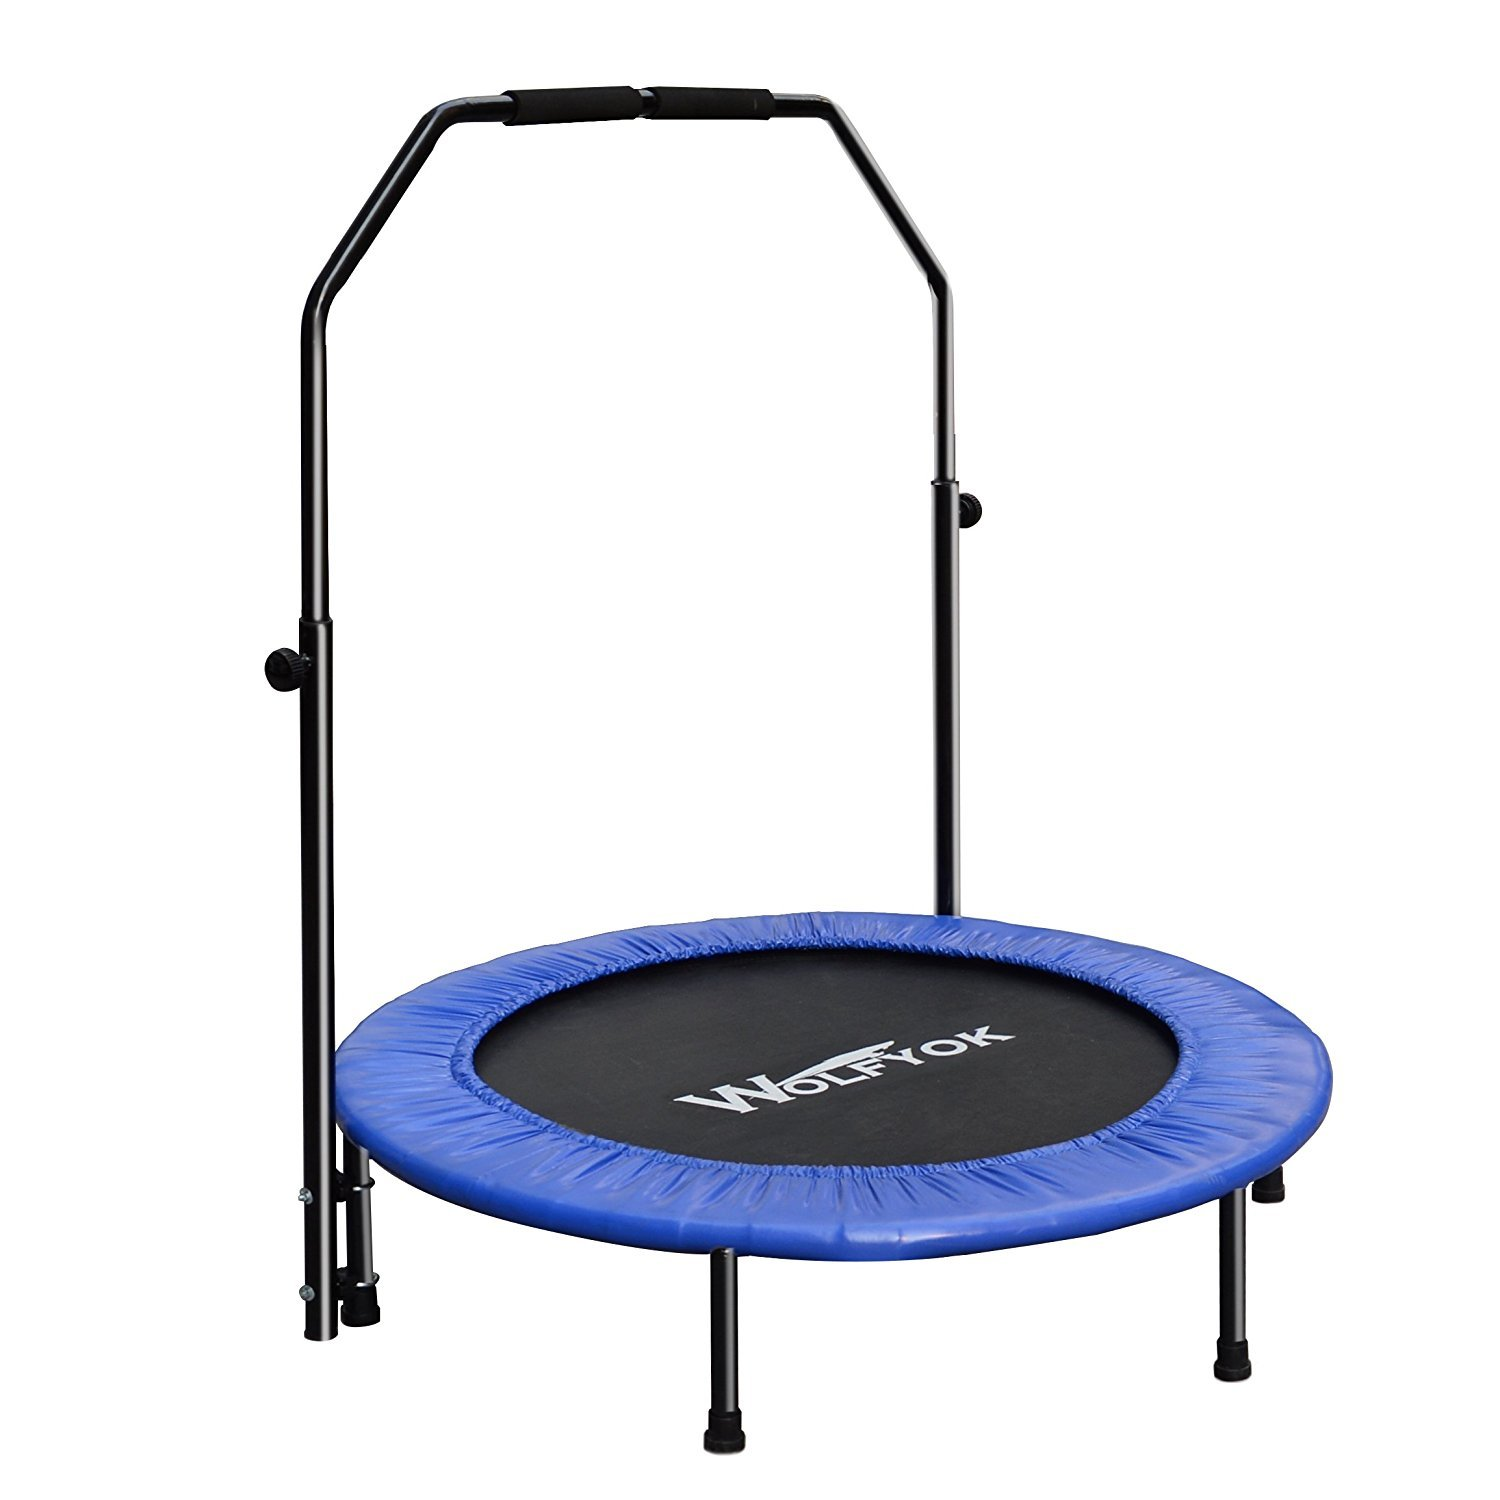 Wolfyok Fitness Trampoline with Safety Pad Adjustable Handle Bar Portable & Foldable Rebounder for Kids Adult Body Exercise Training Workout Max Load 220 lbs